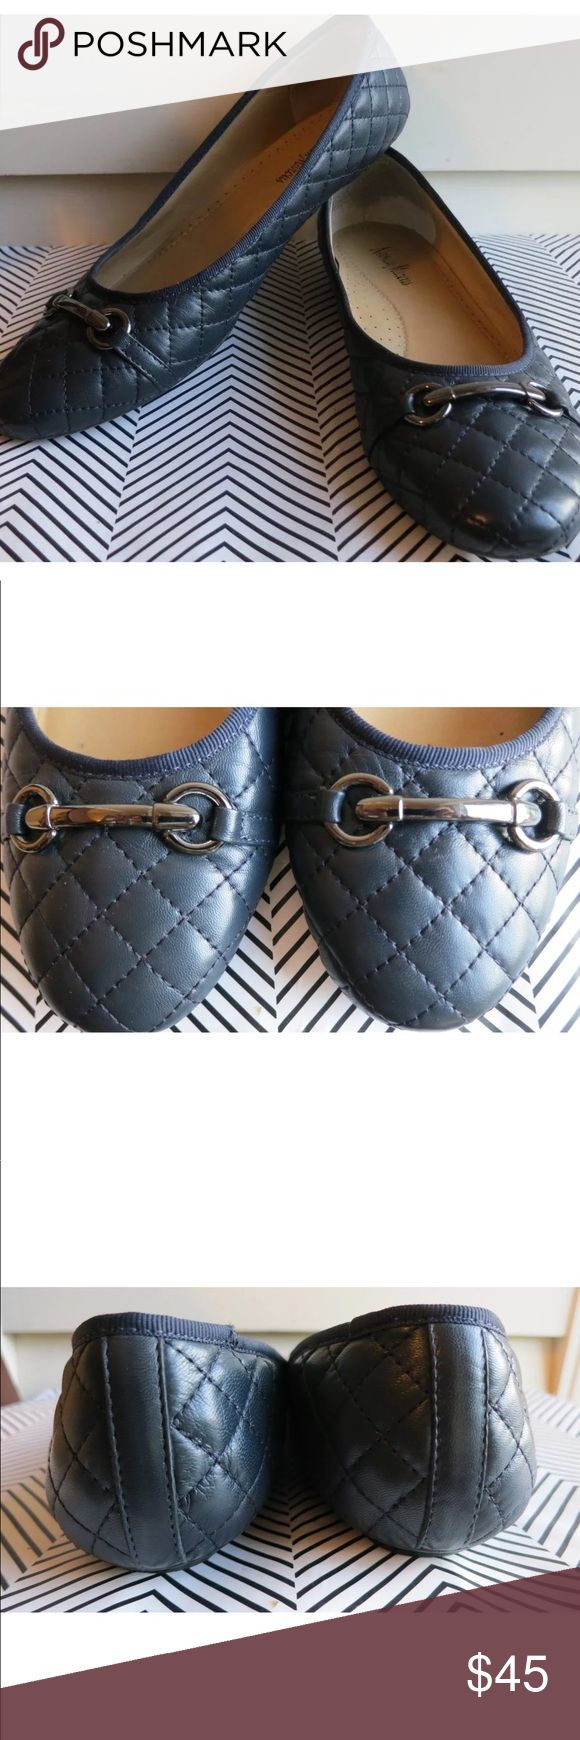 Neiman Marcus 10 M Quilted Ballet Style Flats Great condition Neiman Marcus Shoes Flats & Loafers